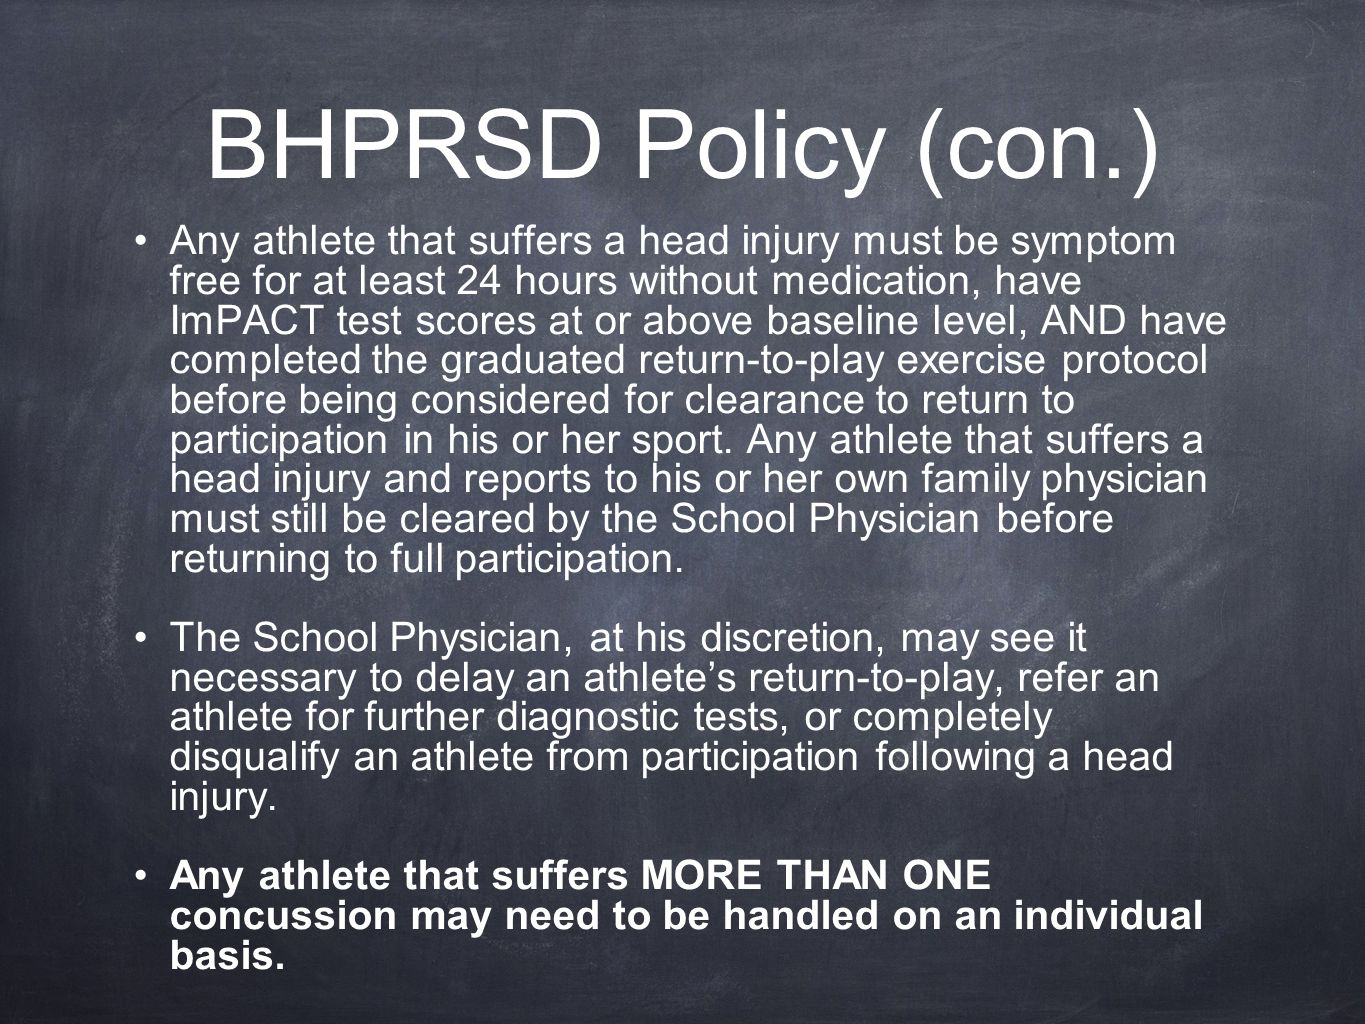 BHPRSD Policy (con.) Any athlete that suffers a head injury must be symptom free for at least 24 hours without medication, have ImPACT test scores at or above baseline level, AND have completed the graduated return-to-play exercise protocol before being considered for clearance to return to participation in his or her sport.